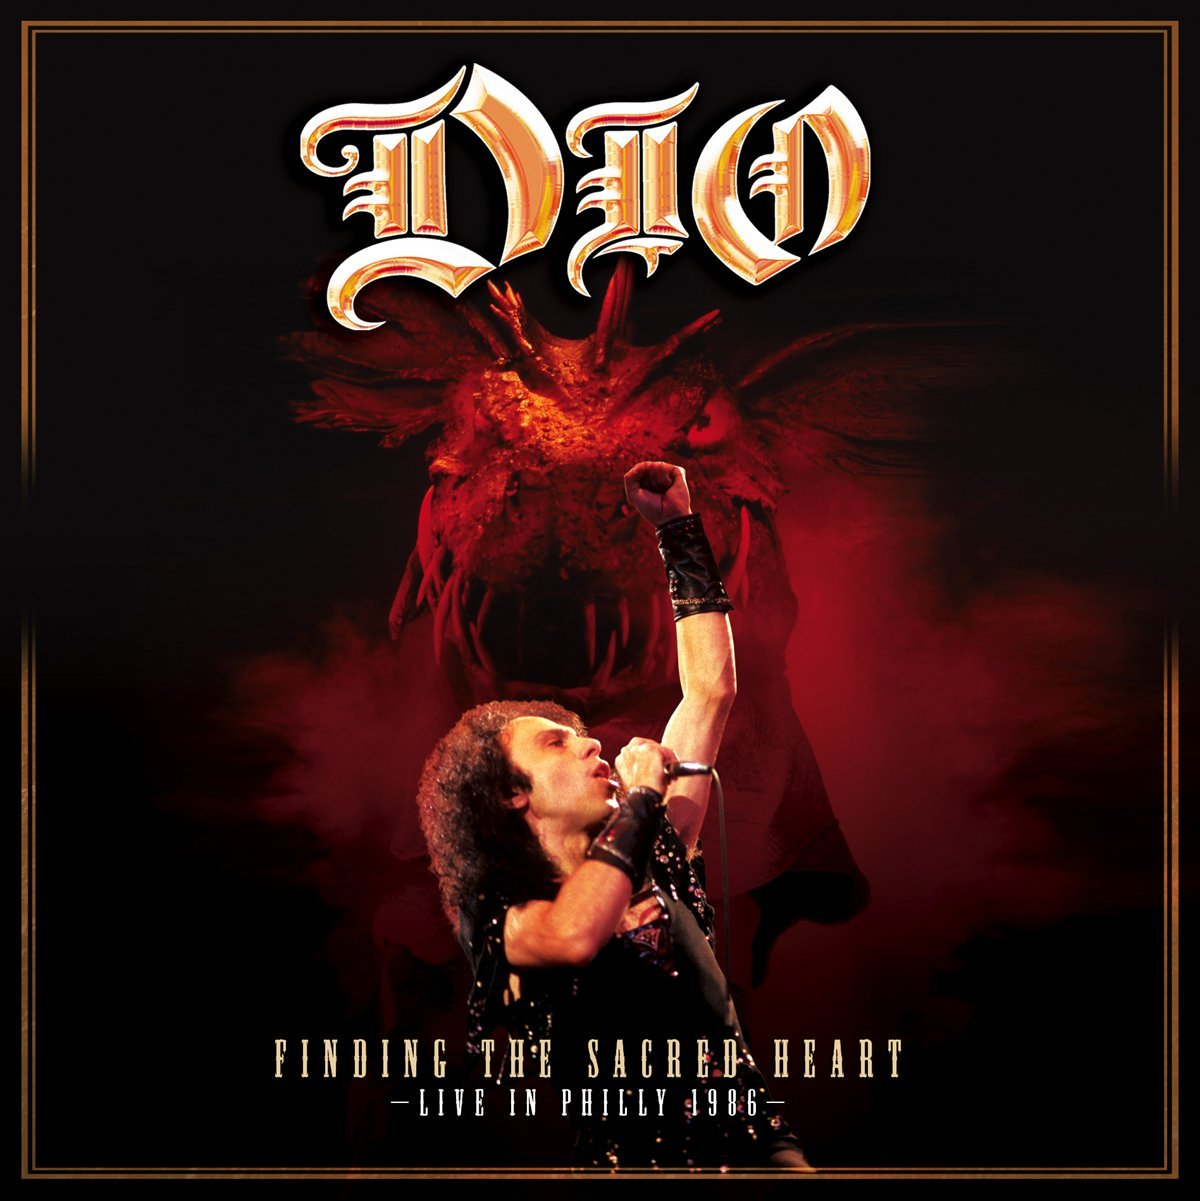 http://4.bp.blogspot.com/-HxuqMaMy4pw/UaZMyNRm1JI/AAAAAAAABw0/A2zFwPBiA-E/s1600/DIO+-+Finding+The+Sacred+Heart+;+Live+In+Philly+1986+(front).jpg